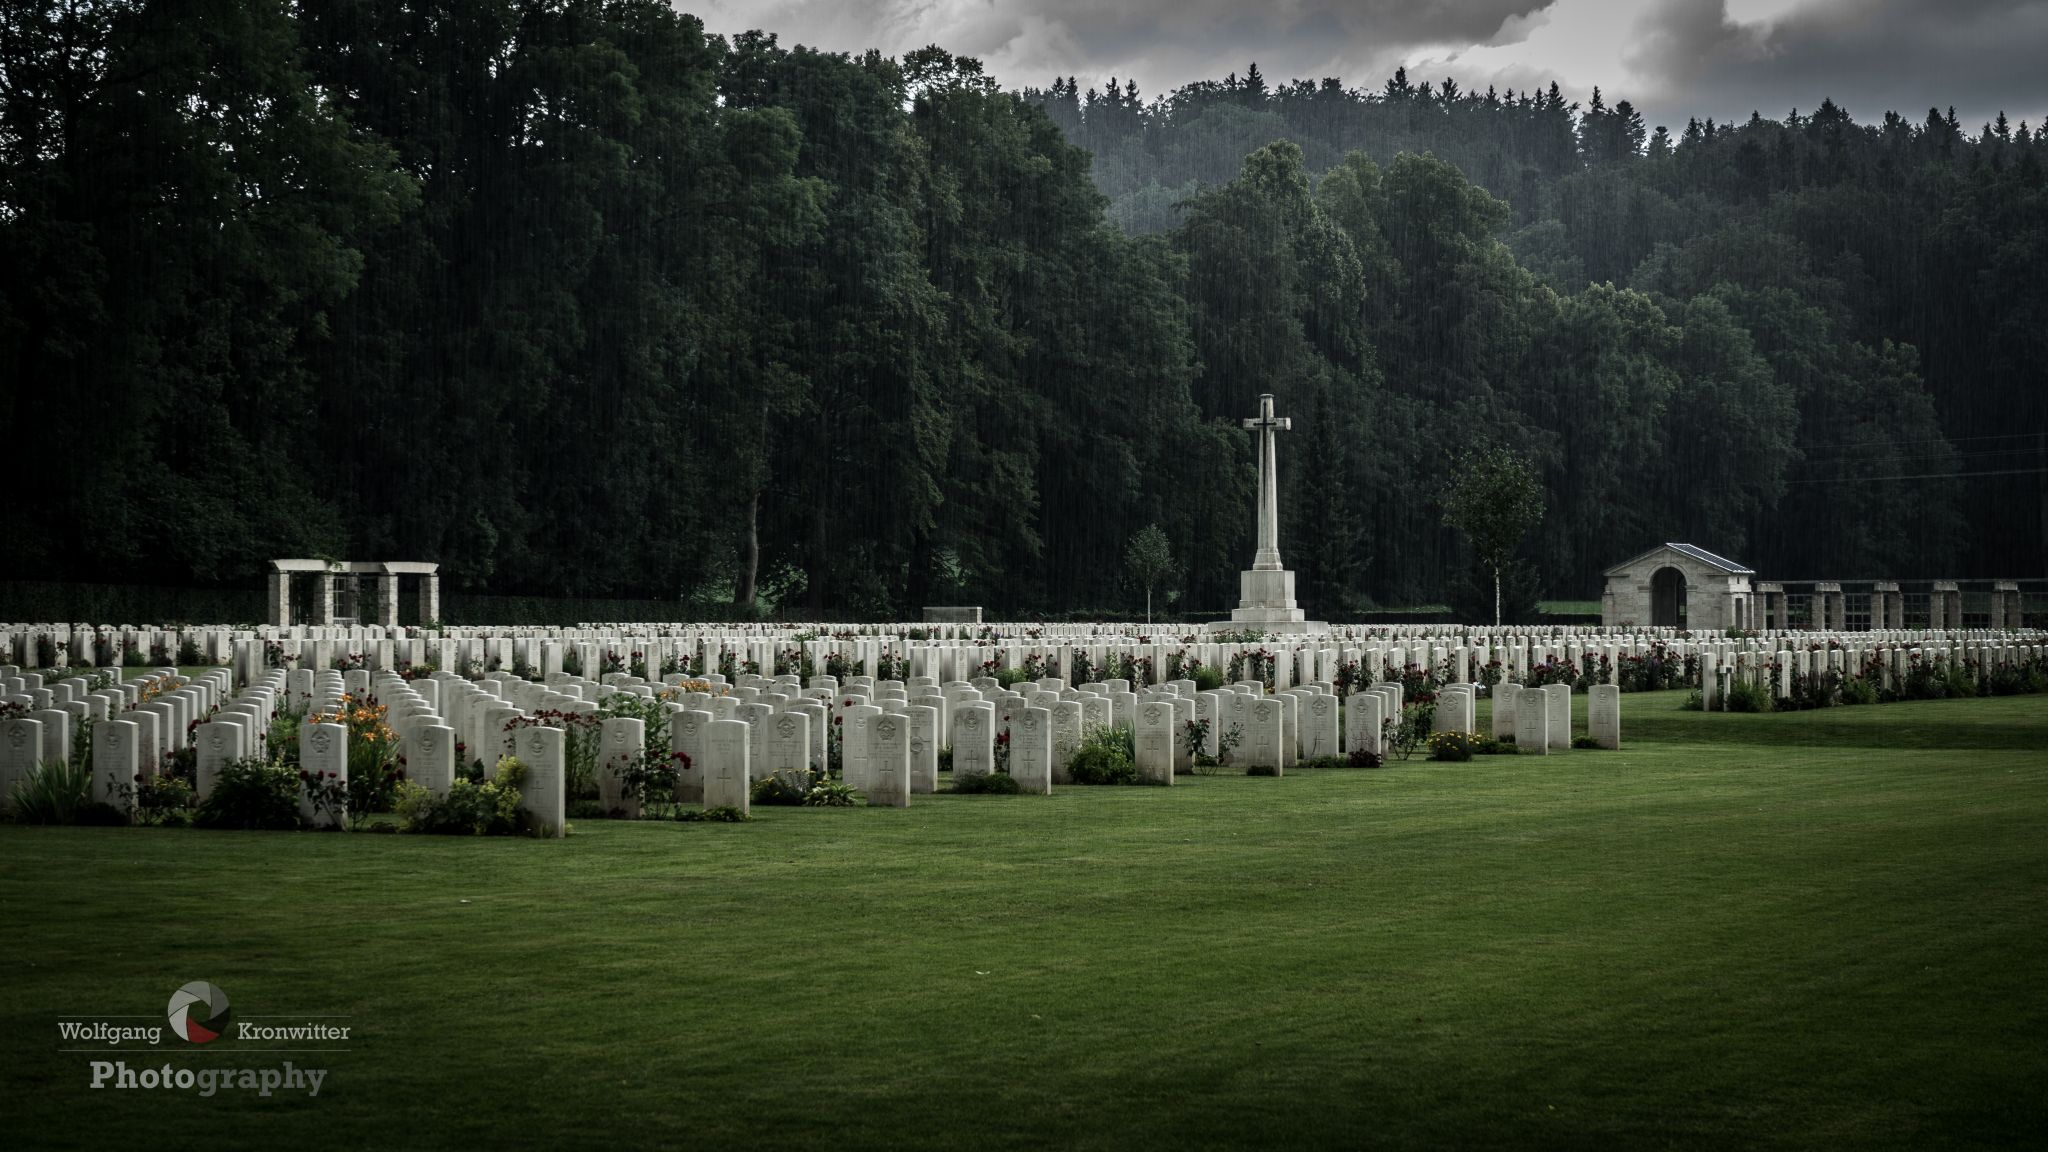 silence at the Durnbach war cemetery, Germany